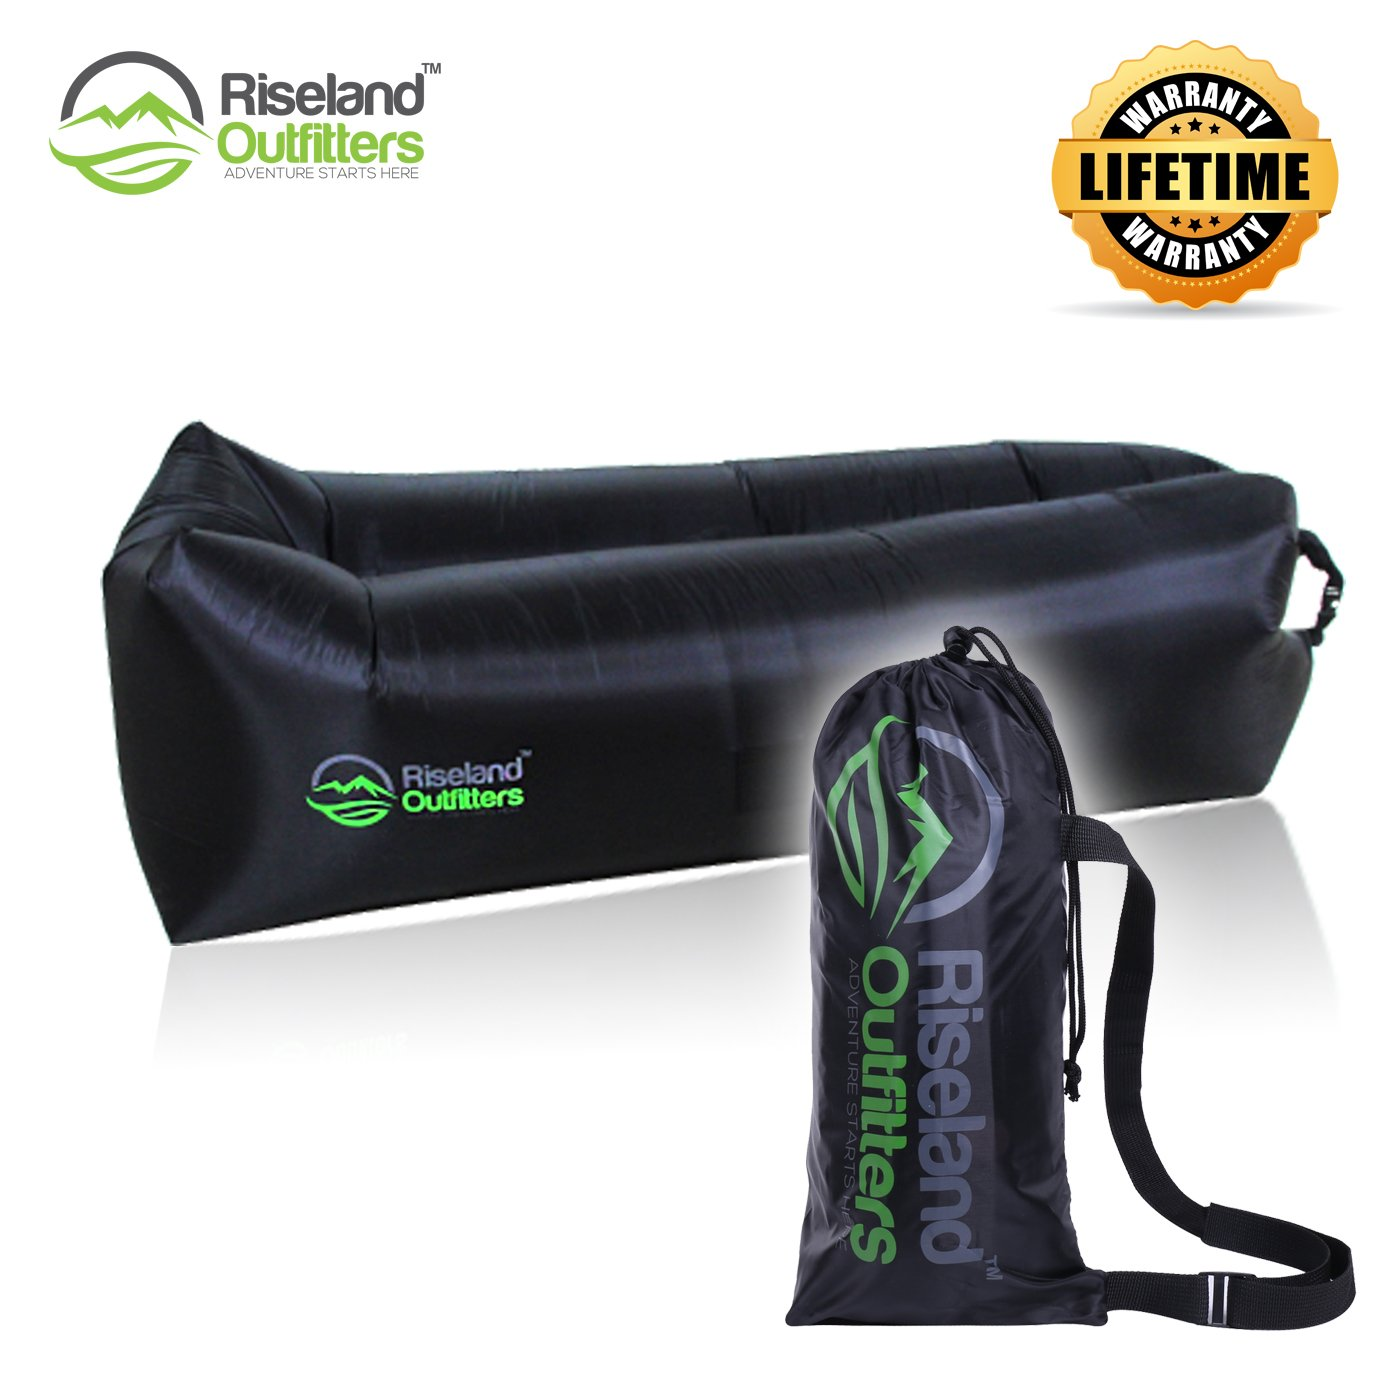 DownTime Inflatable Lounger By Riseland Outfitters – Deluxe Outdoor Air Lounger Sofa – Sturdy & Durable Construction – Ideal Inflatable Couch For Outdoors Lovers, Suitable For Camping & Beach Use